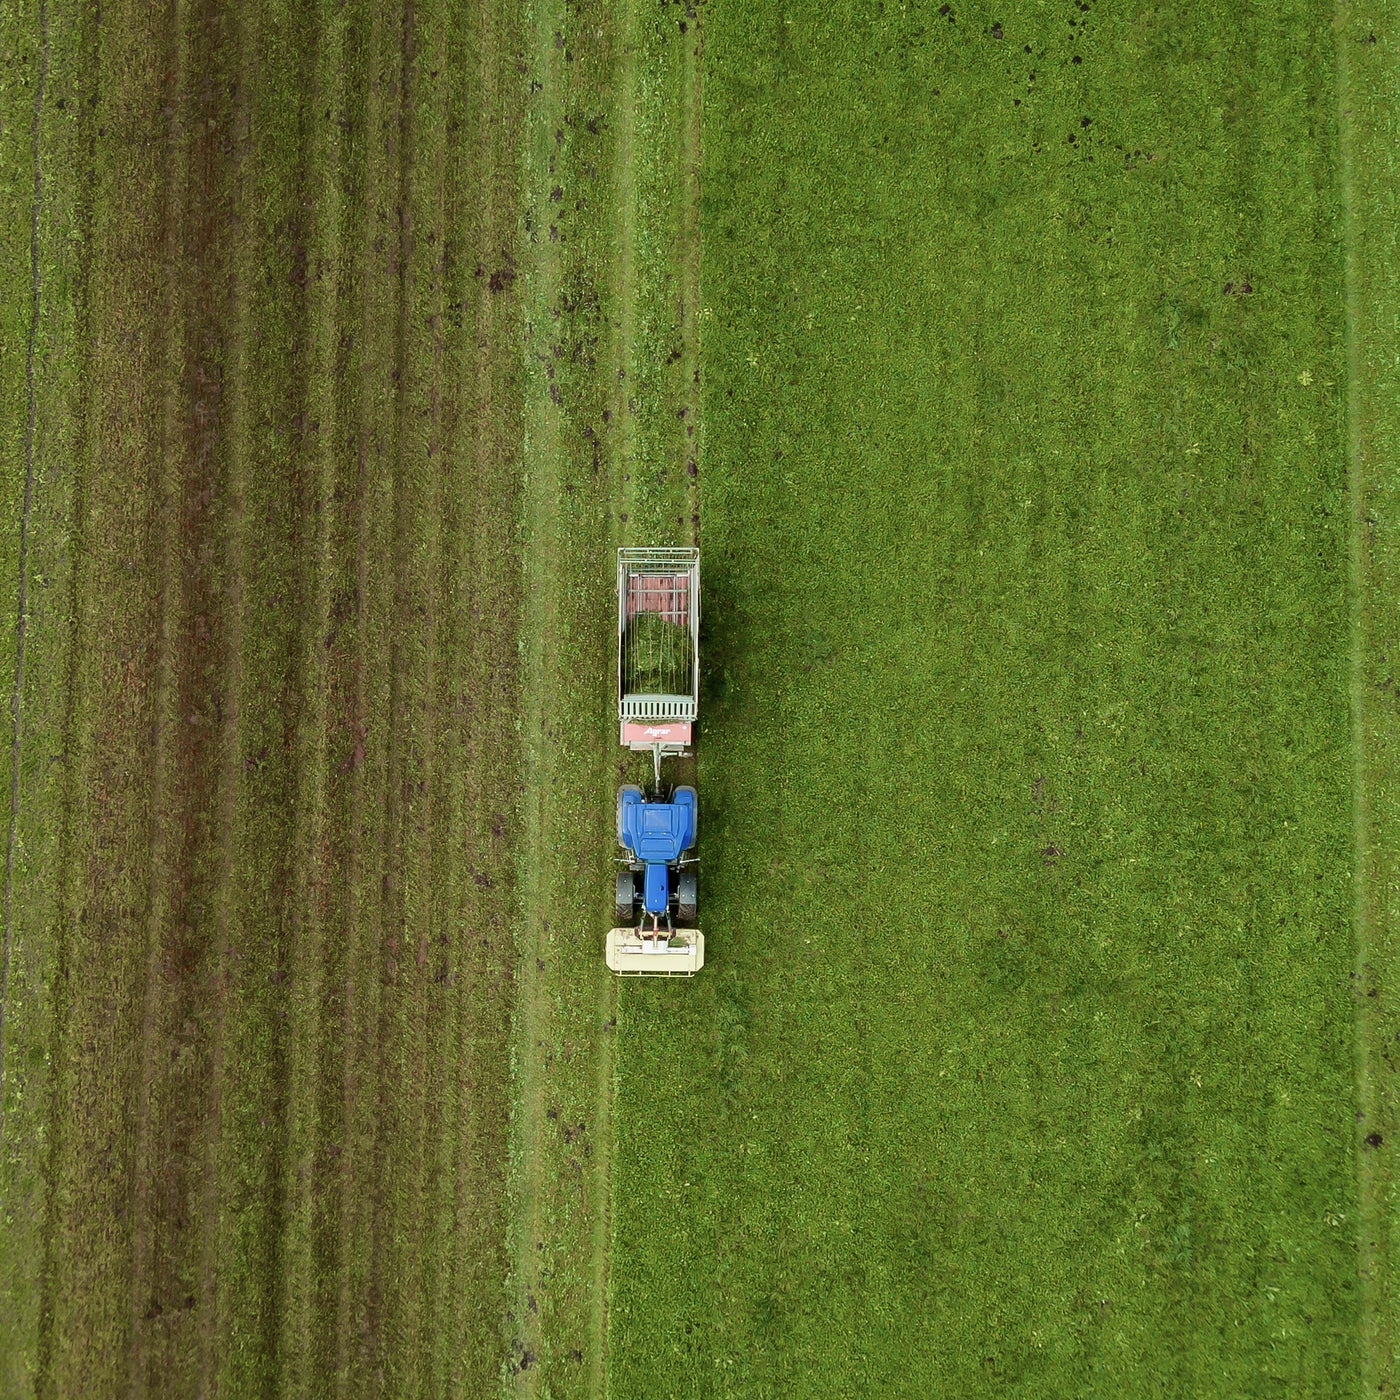 aerial view photograph of tractor driving through a green field of cbd producing plants